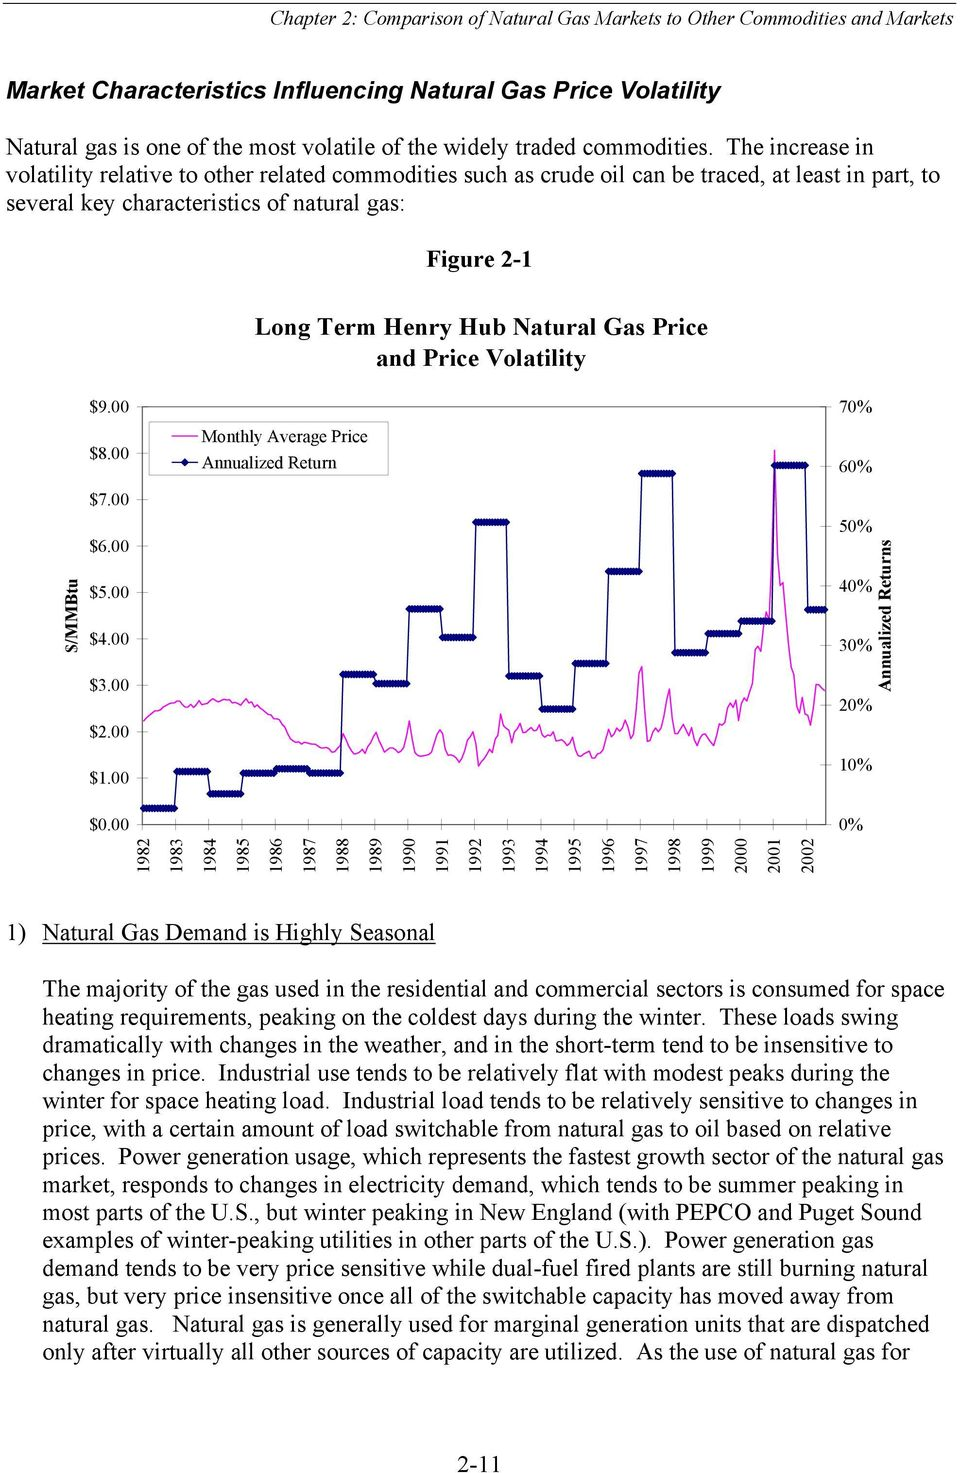 Natural Gas Price and Price Volatility $/MMBtu $9.00 $8.00 $7.00 $6.00 $5.00 $4.00 $3.00 $2.00 $1.00 Monthly Average Price Annualized Return 70% 60% 50% 40% 30% 20% 10% $0.